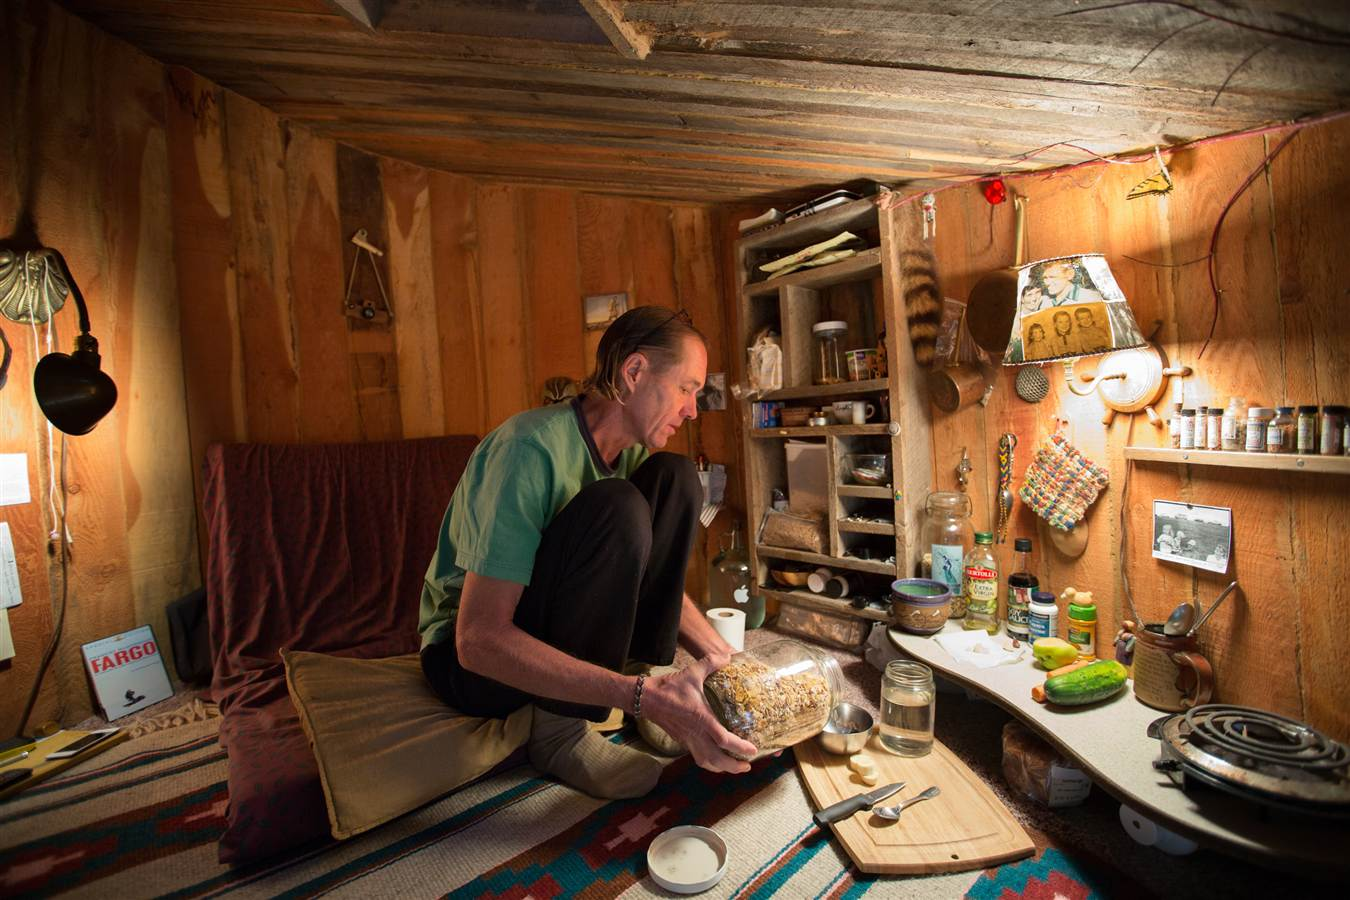 Man Chooses To Live On $5,000 A Year In A Hobbit Hole